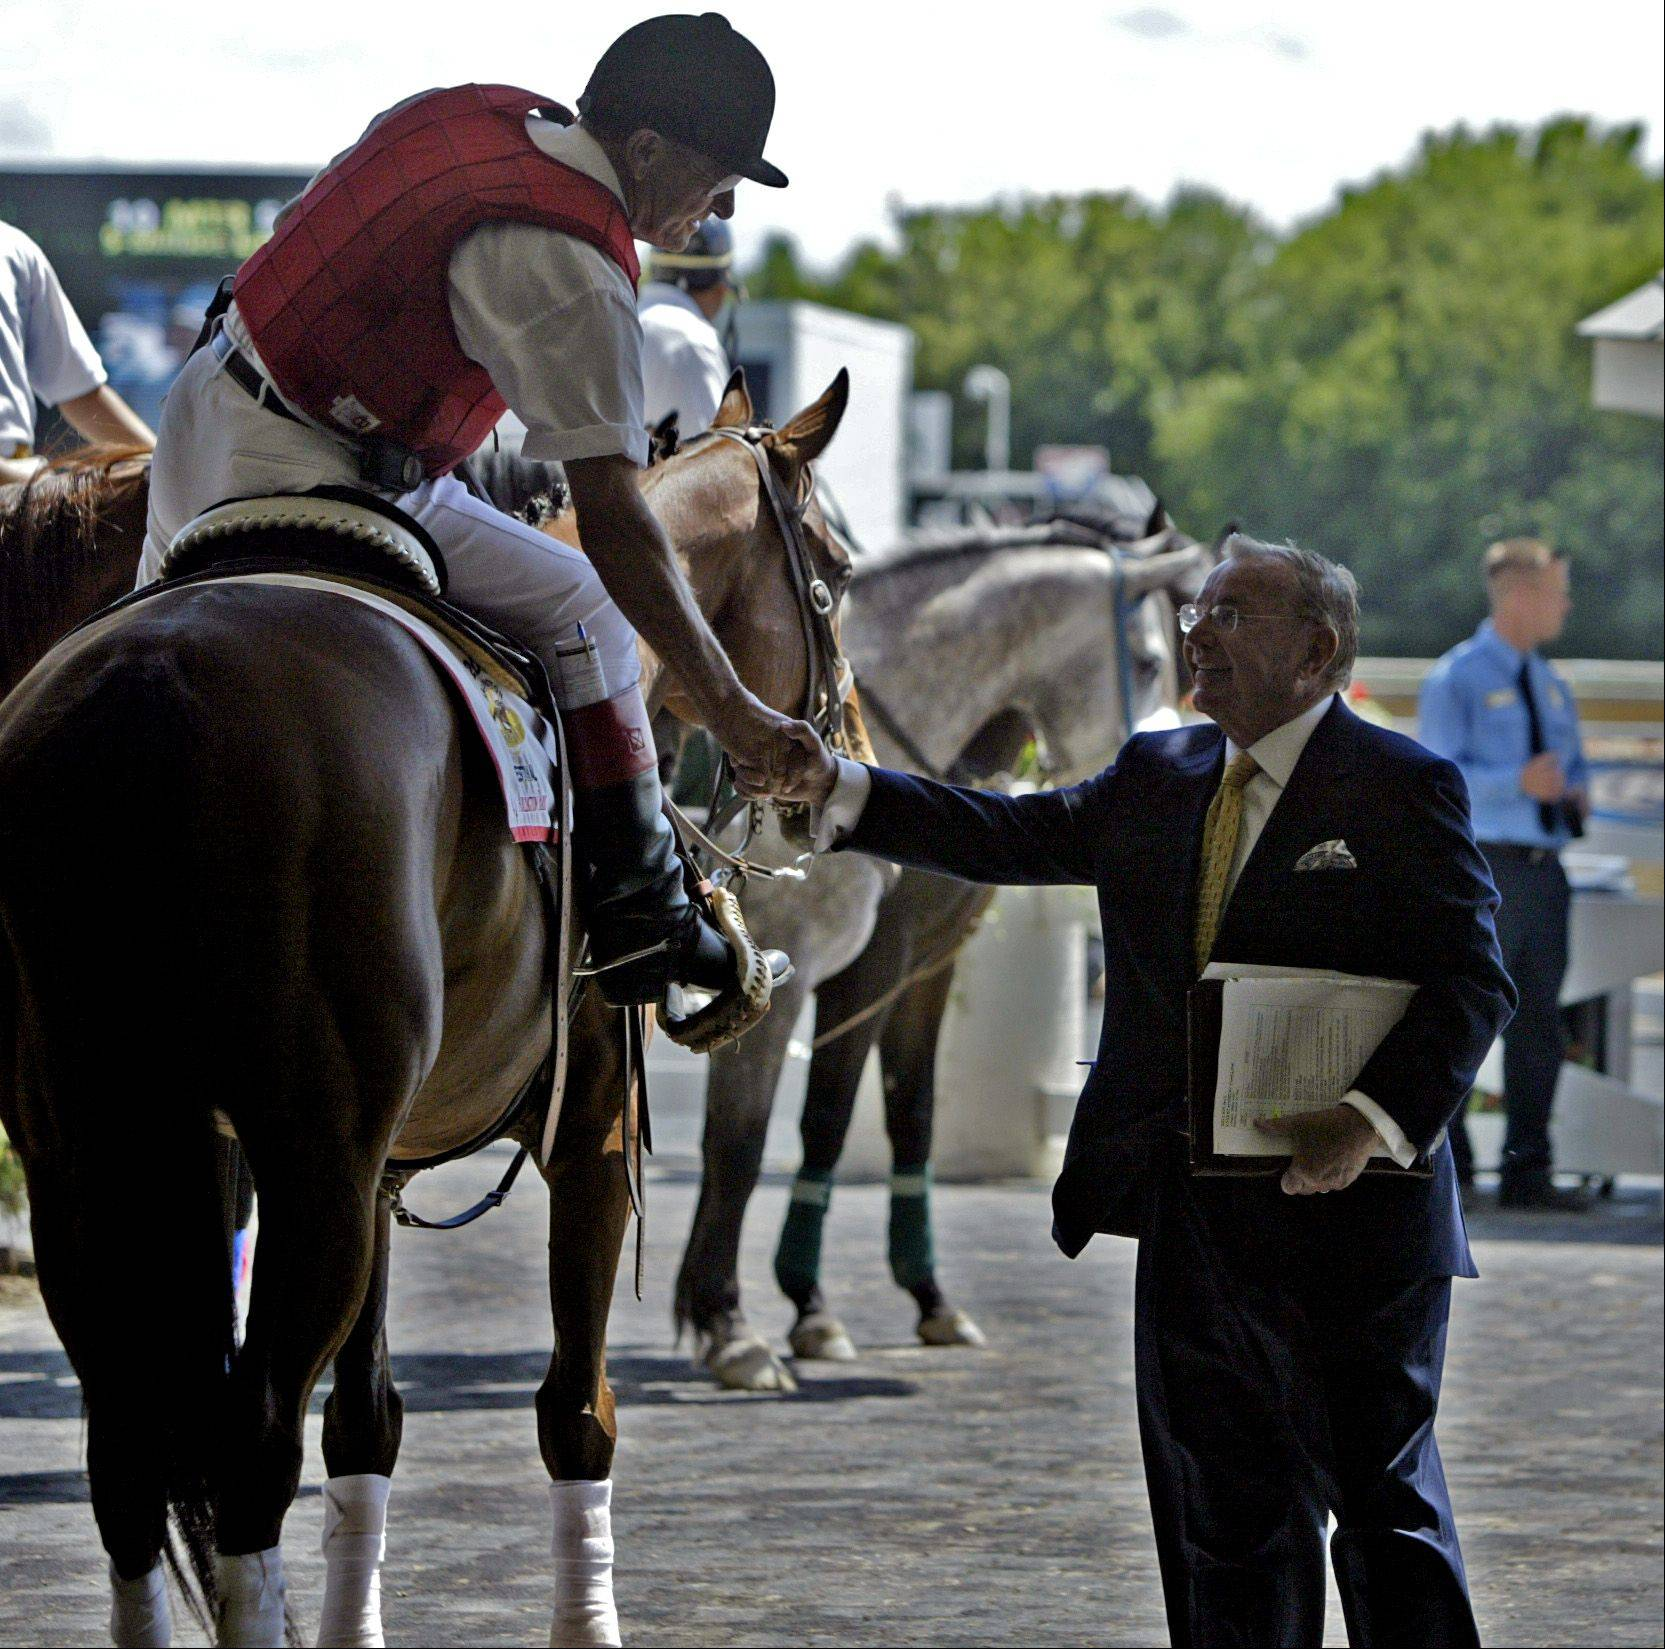 Arlington International Racecourse owner Richard Ducchossois shakes the hand of an outrider during the 22nd annual running of the Arlington Million.